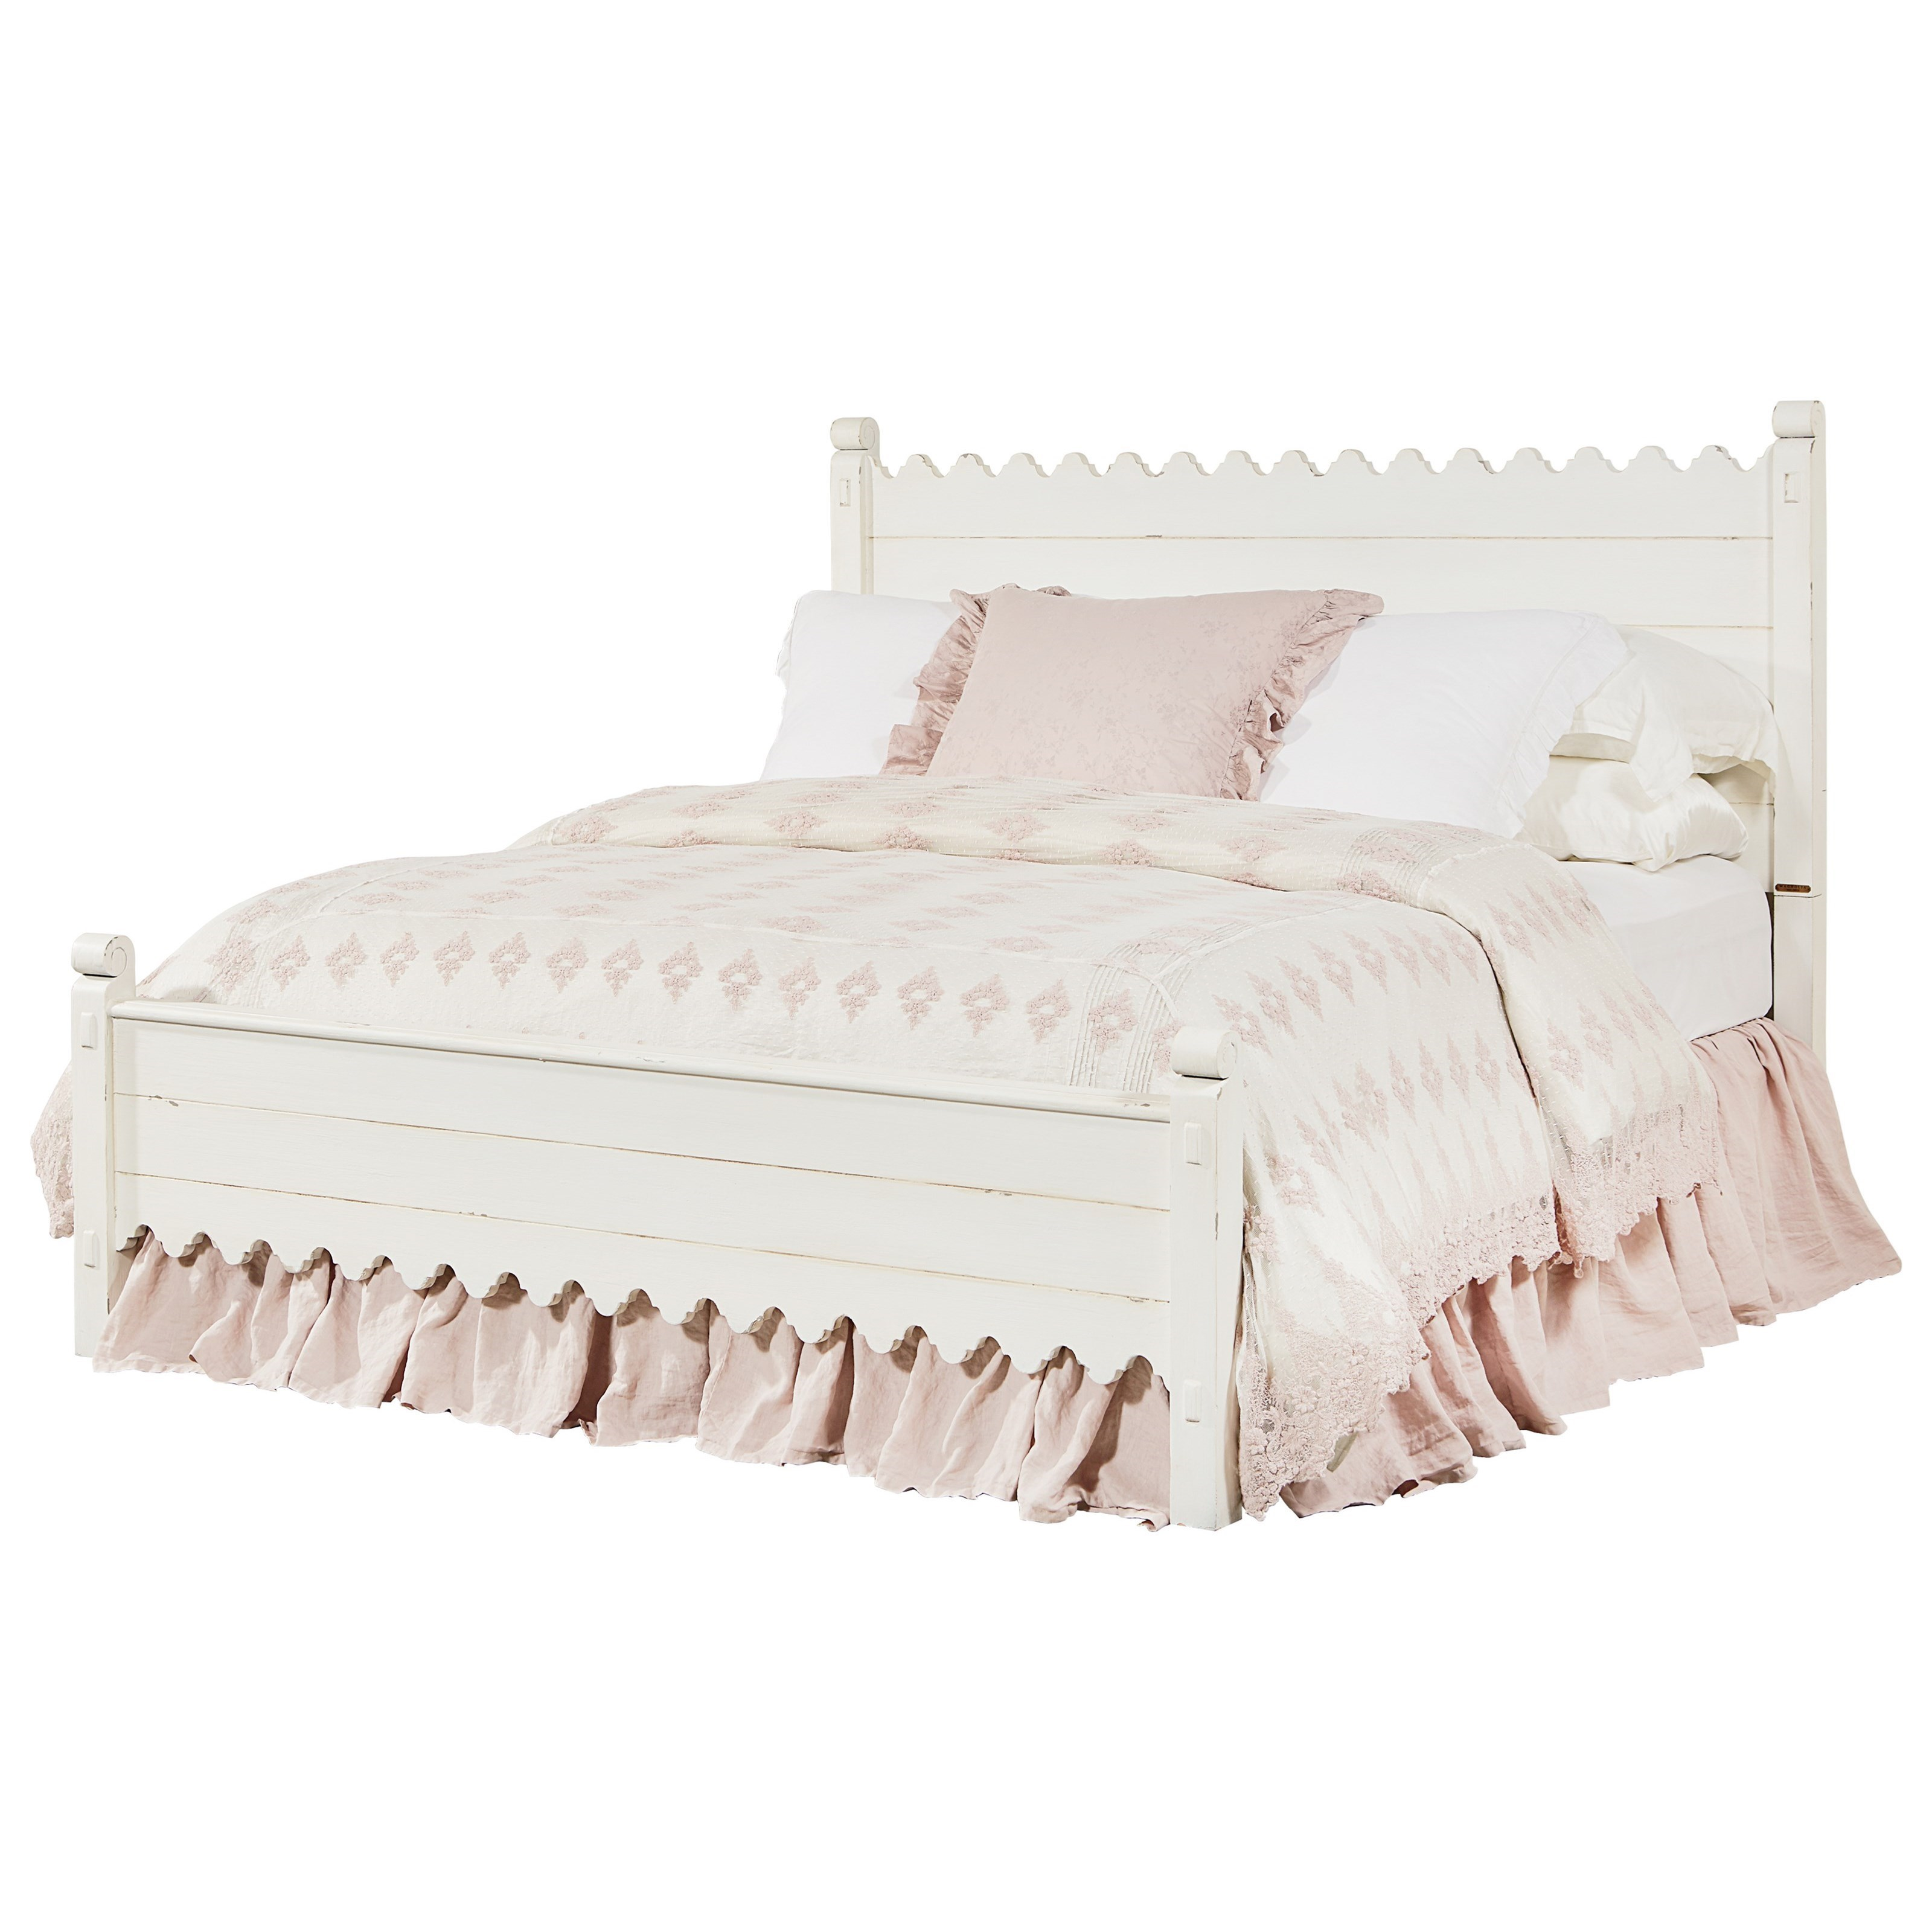 Magnolia Home By Joanna Gaines Farmhouse Queen Bed With Scallop Trimming